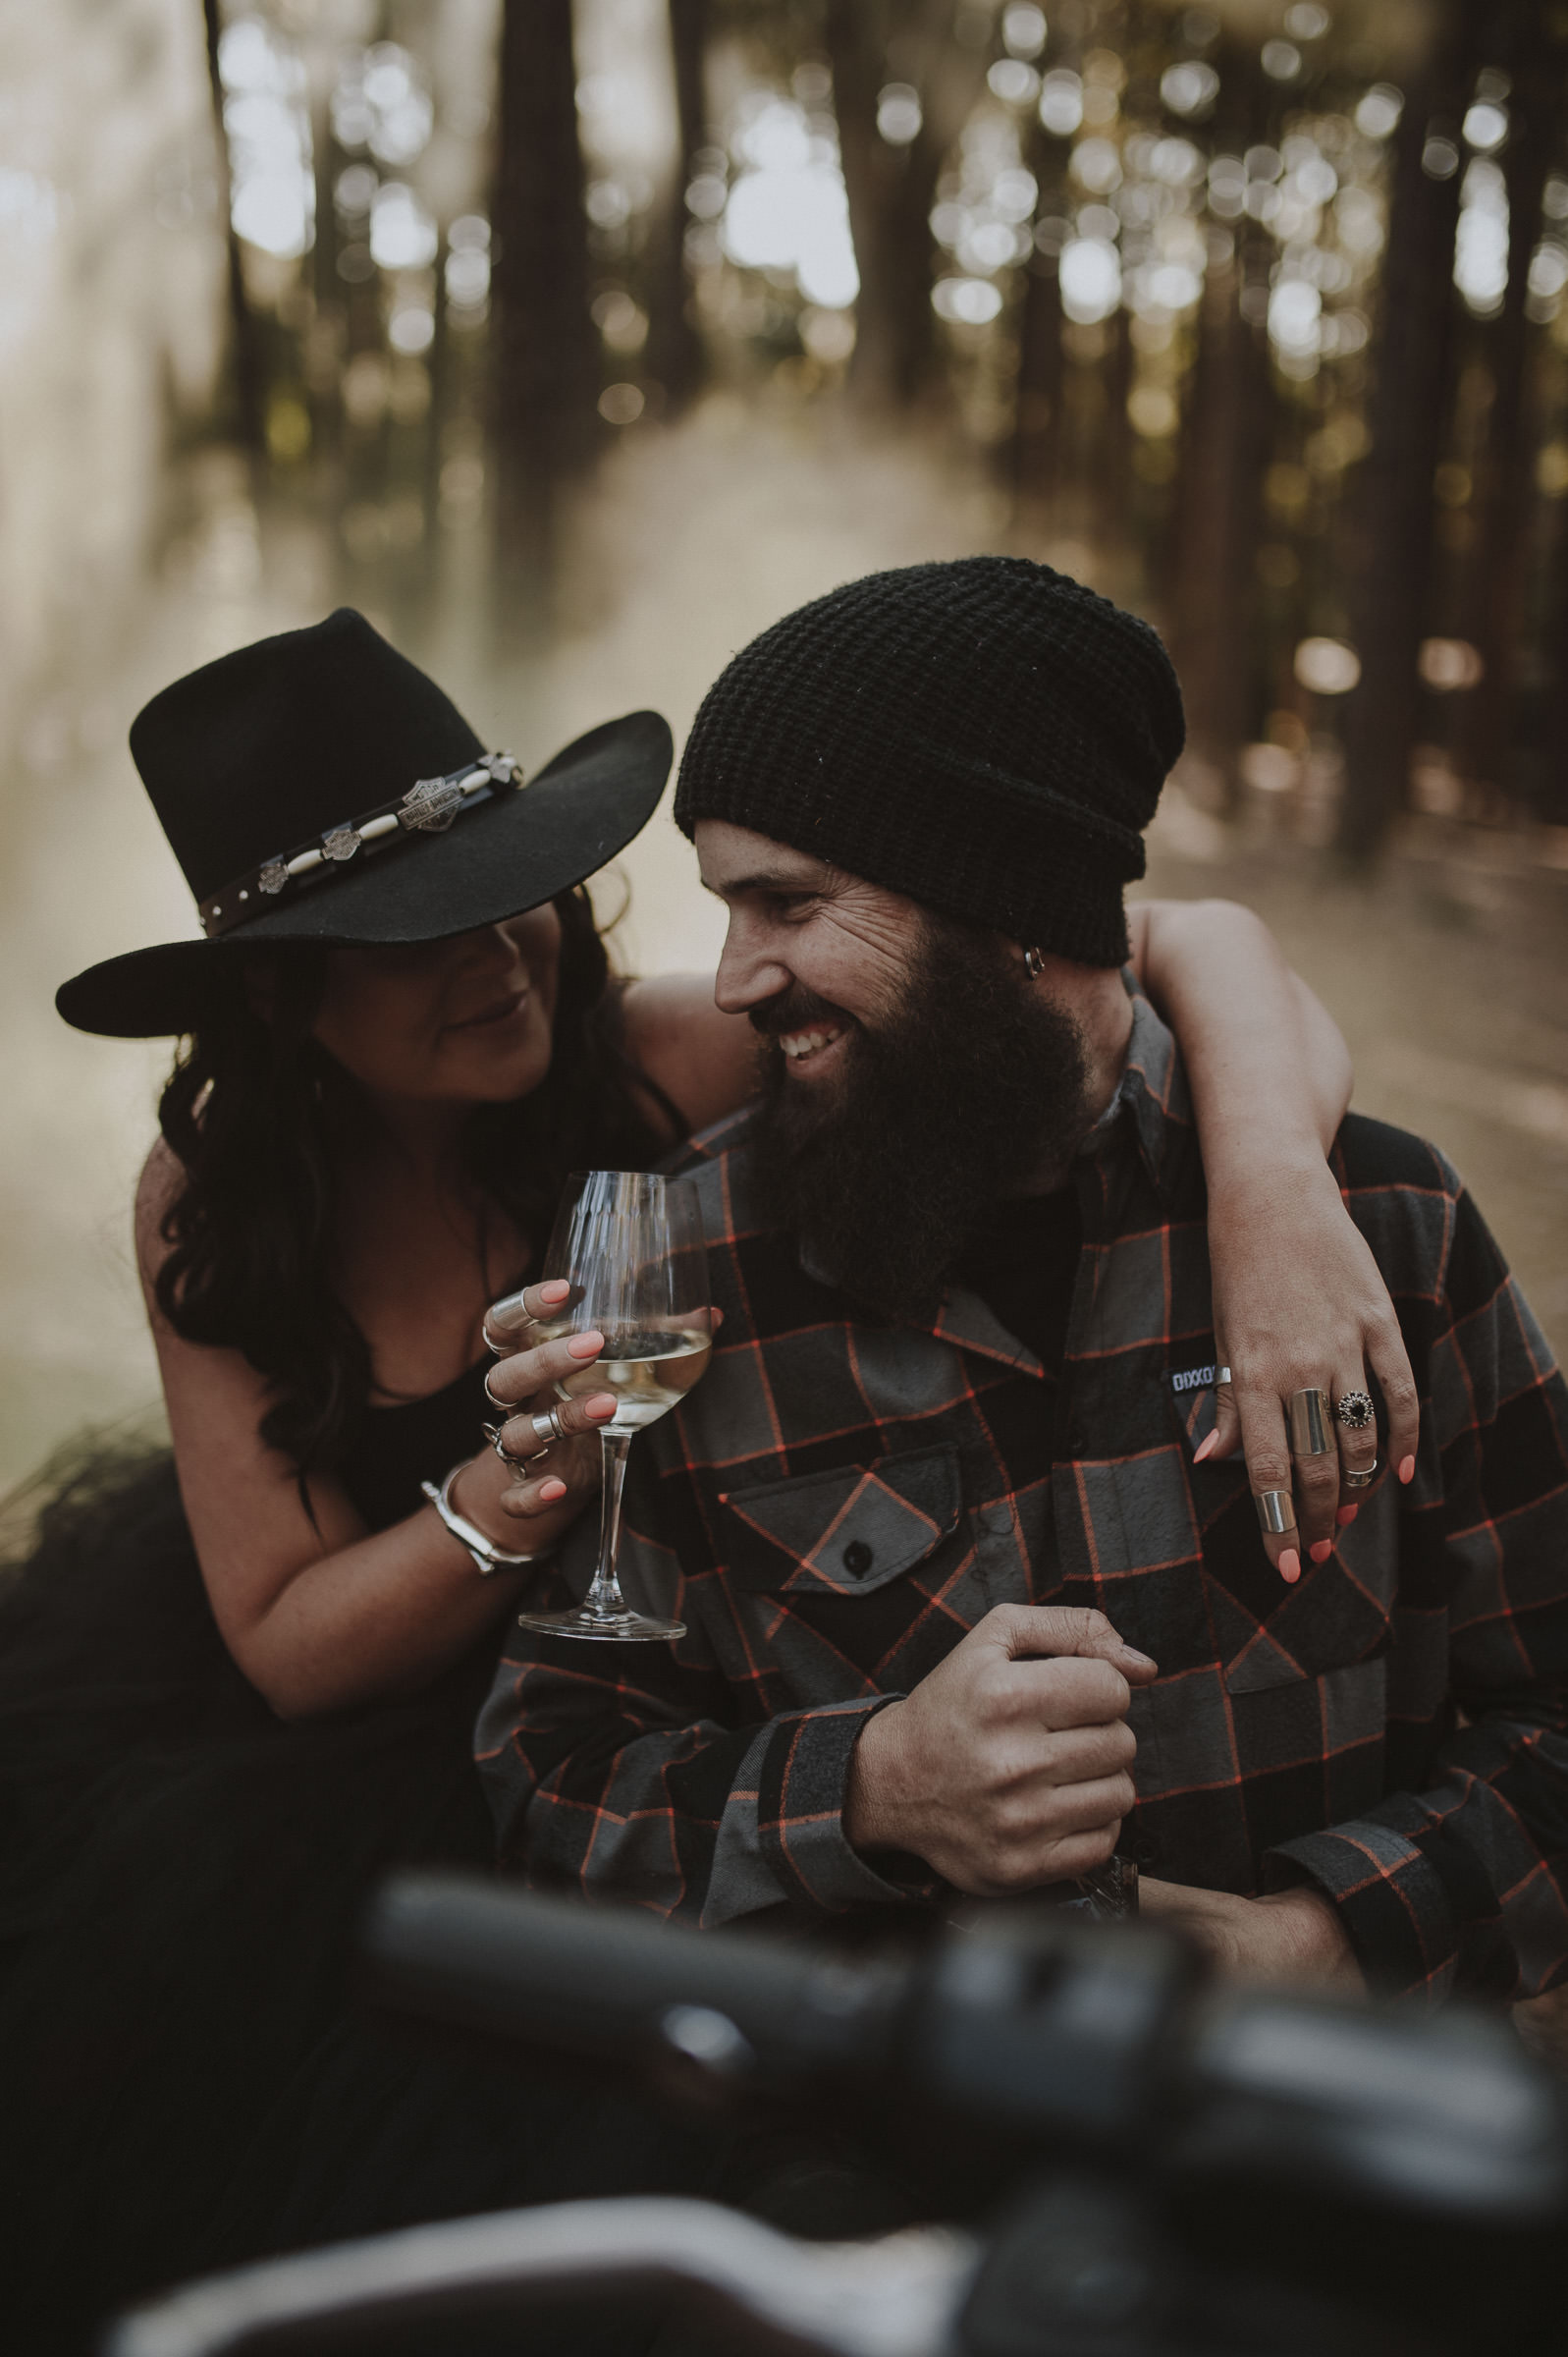 Madeline_Jamie_Watagens_Pine_Forest_Engagement_Shoot_Blog-19.jpg